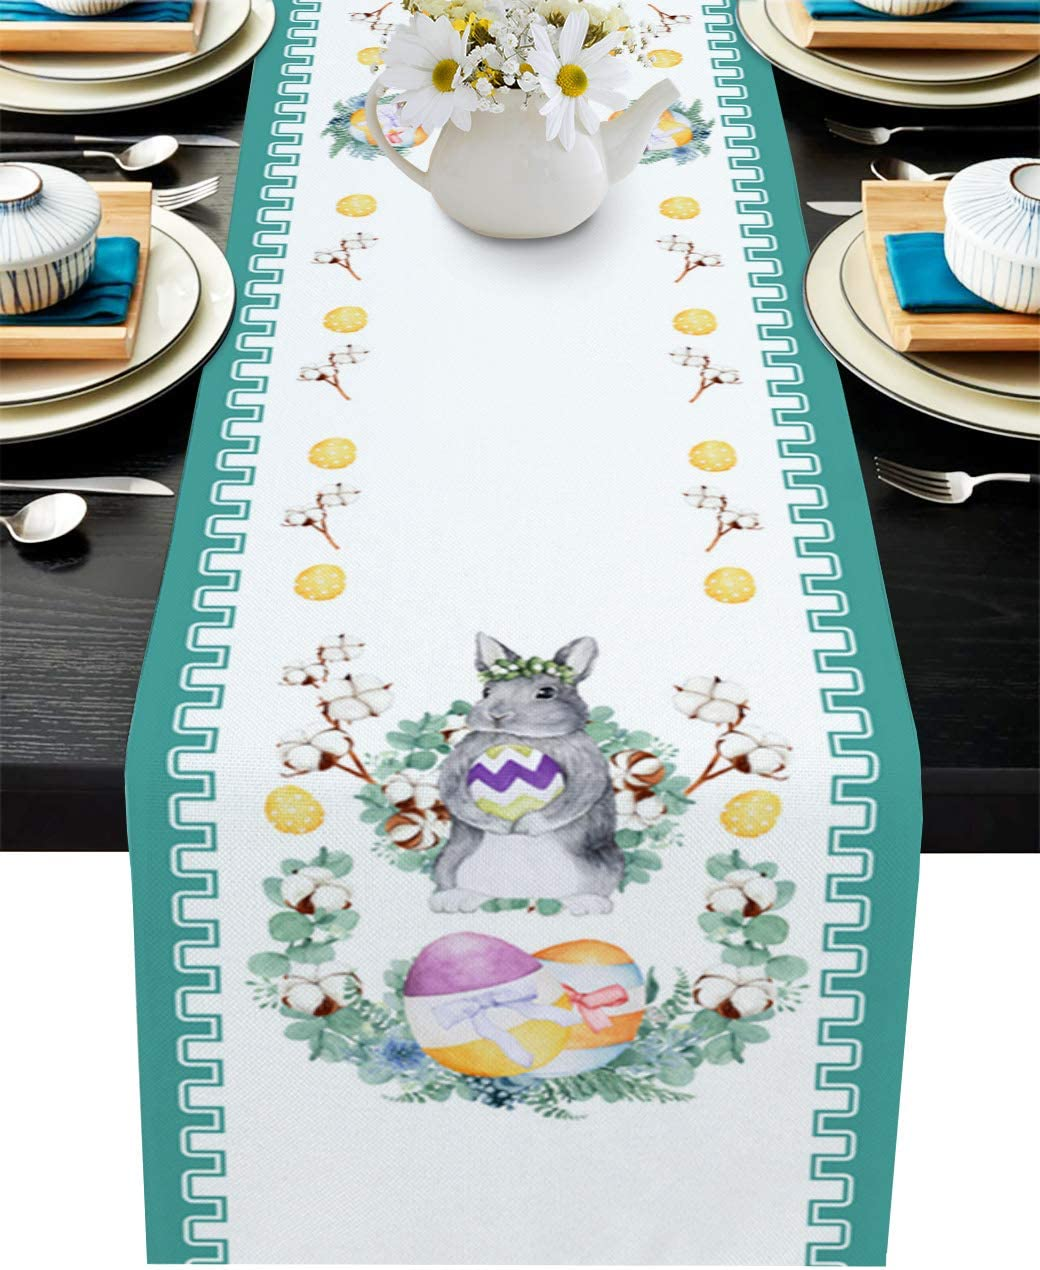 Table Runner 120 Inche for Dining Coffee Table, Easter Spring Watercolor Bunny Colorful Eggs Burlap Rectangle Table Cloth Decor Birthday Wedding Holiday Party, 13